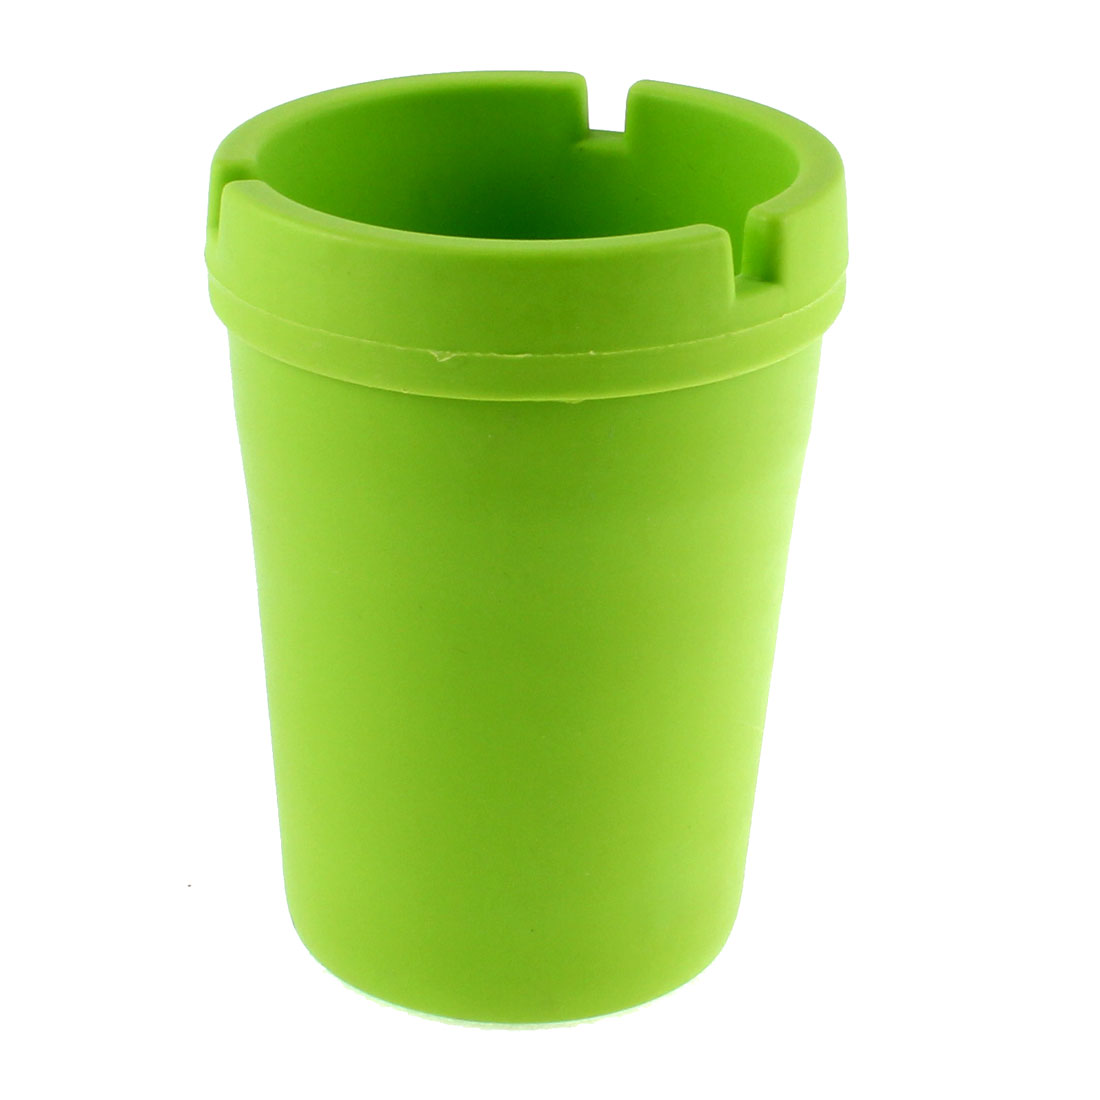 Home Office Outdoor Car Plastic Extinguishing Butt Bucket Ashtray Green